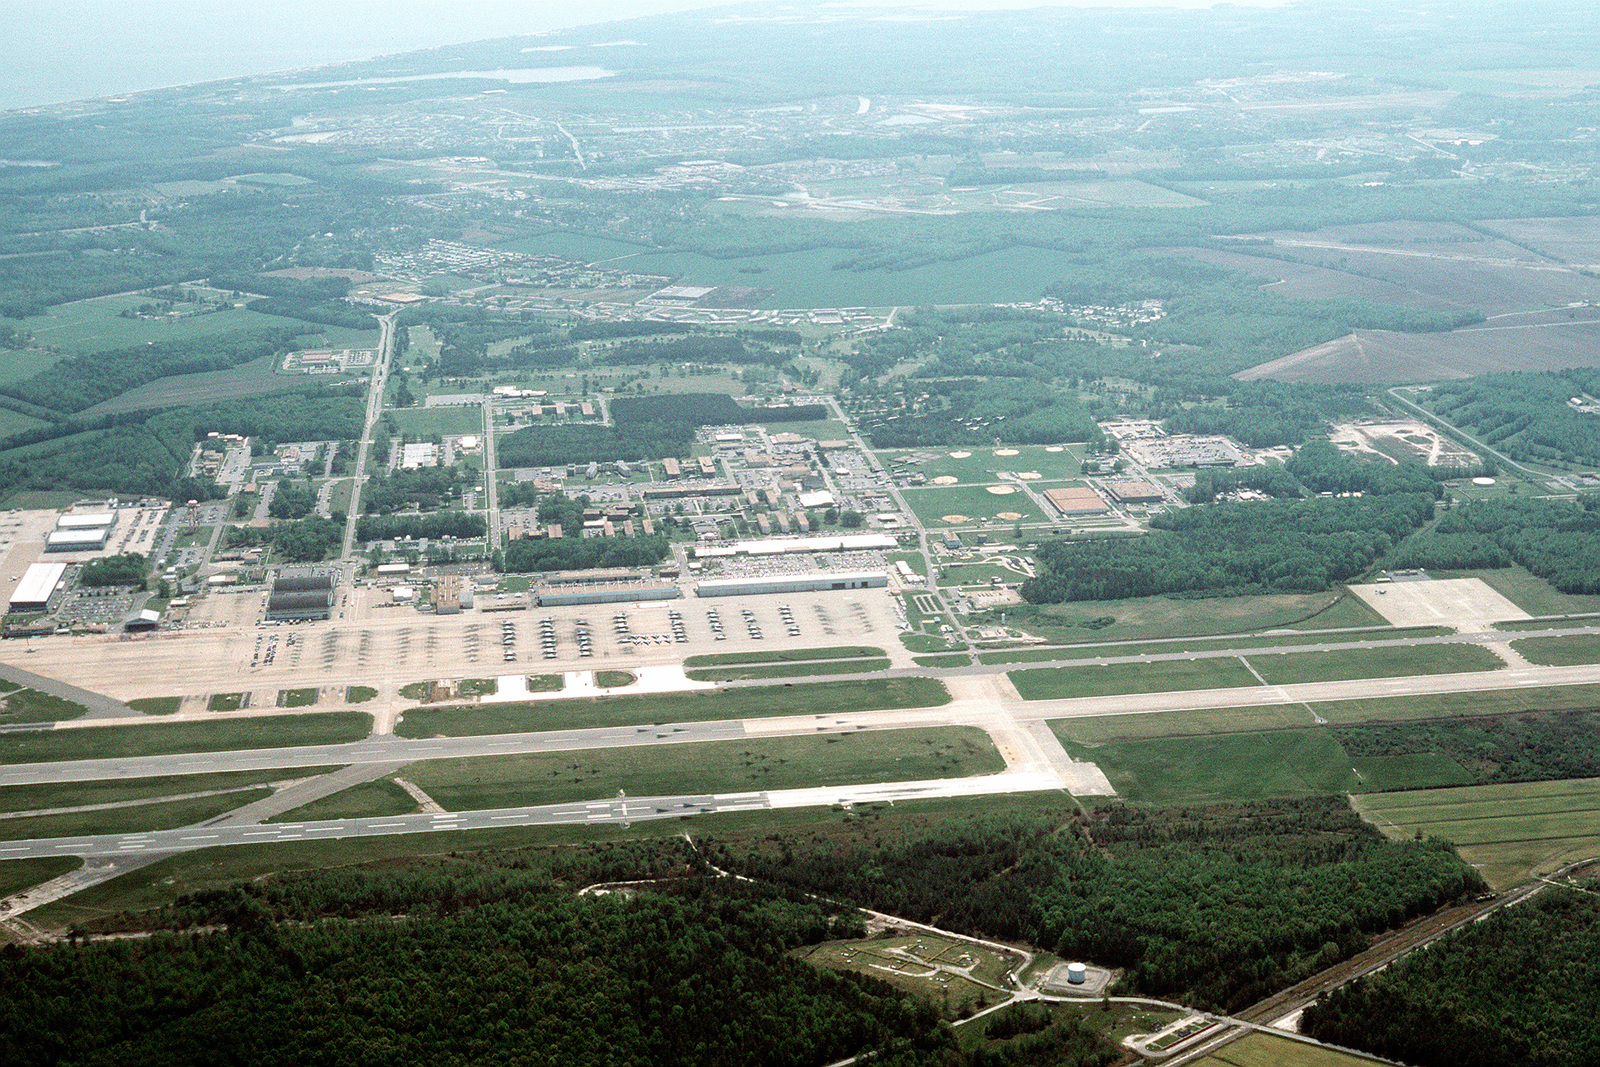 An aerial view of a portion of the air station. On and between the runways are the shadows of F-14A Tomcat aircraft and A-6E Intruder aircraft from Carrier Air Wing (CVW-1). The aircraft are returning to Oceana after their deployment to the Persian Gulf region aboard the aircraft carrier USS AMERICA (CV-66) for Operation Desert Shield and Operation Desert Storm